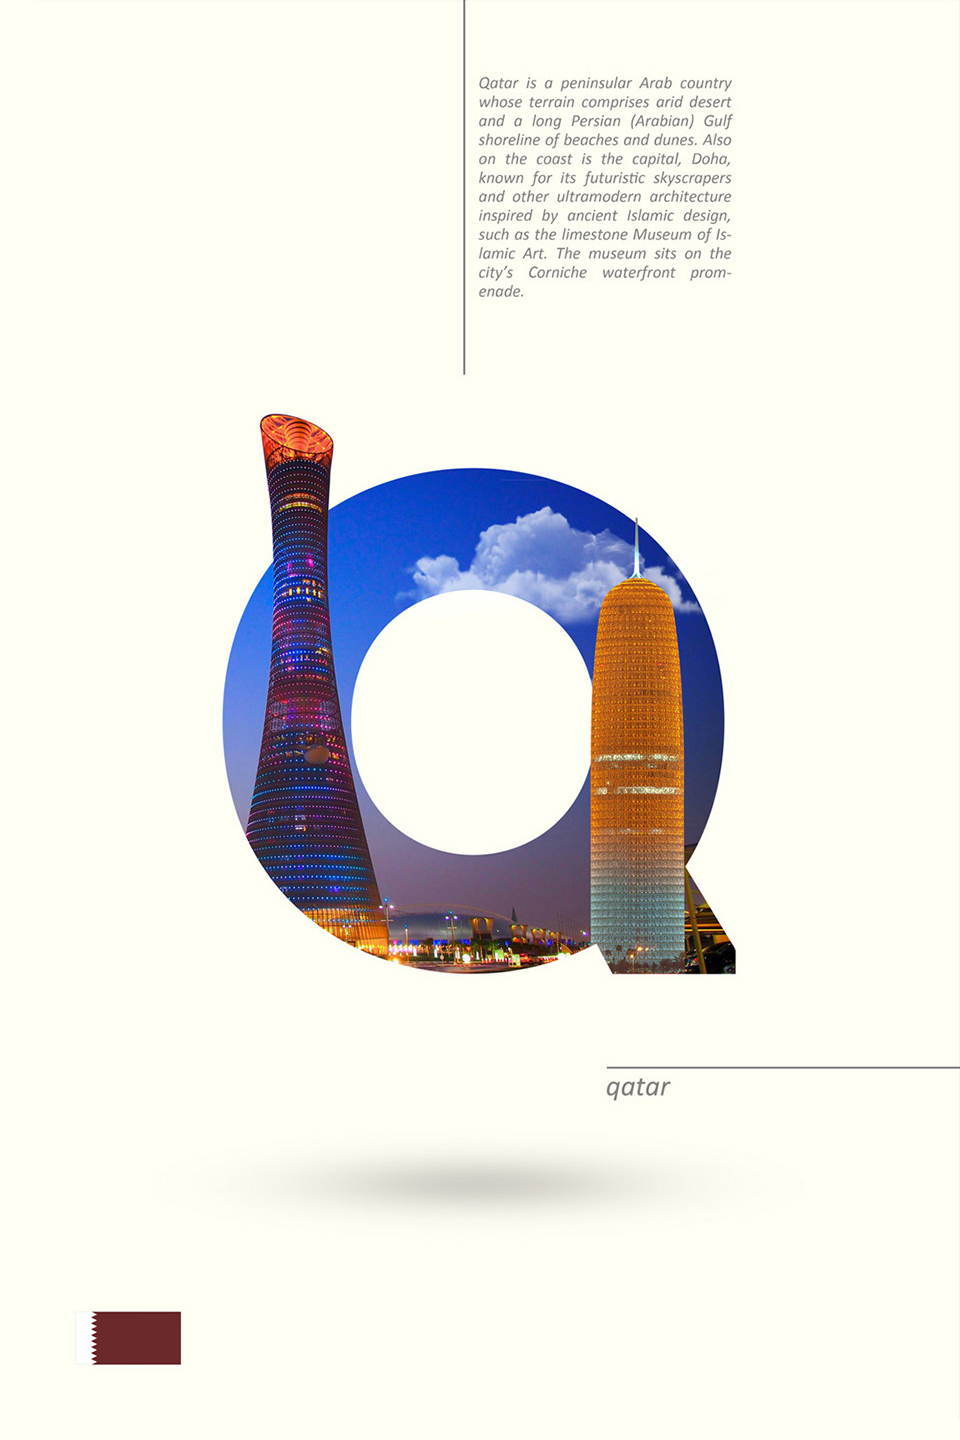 Beautiful Alphabet Series Of Countries And Their Iconic Landmarks - Qatar